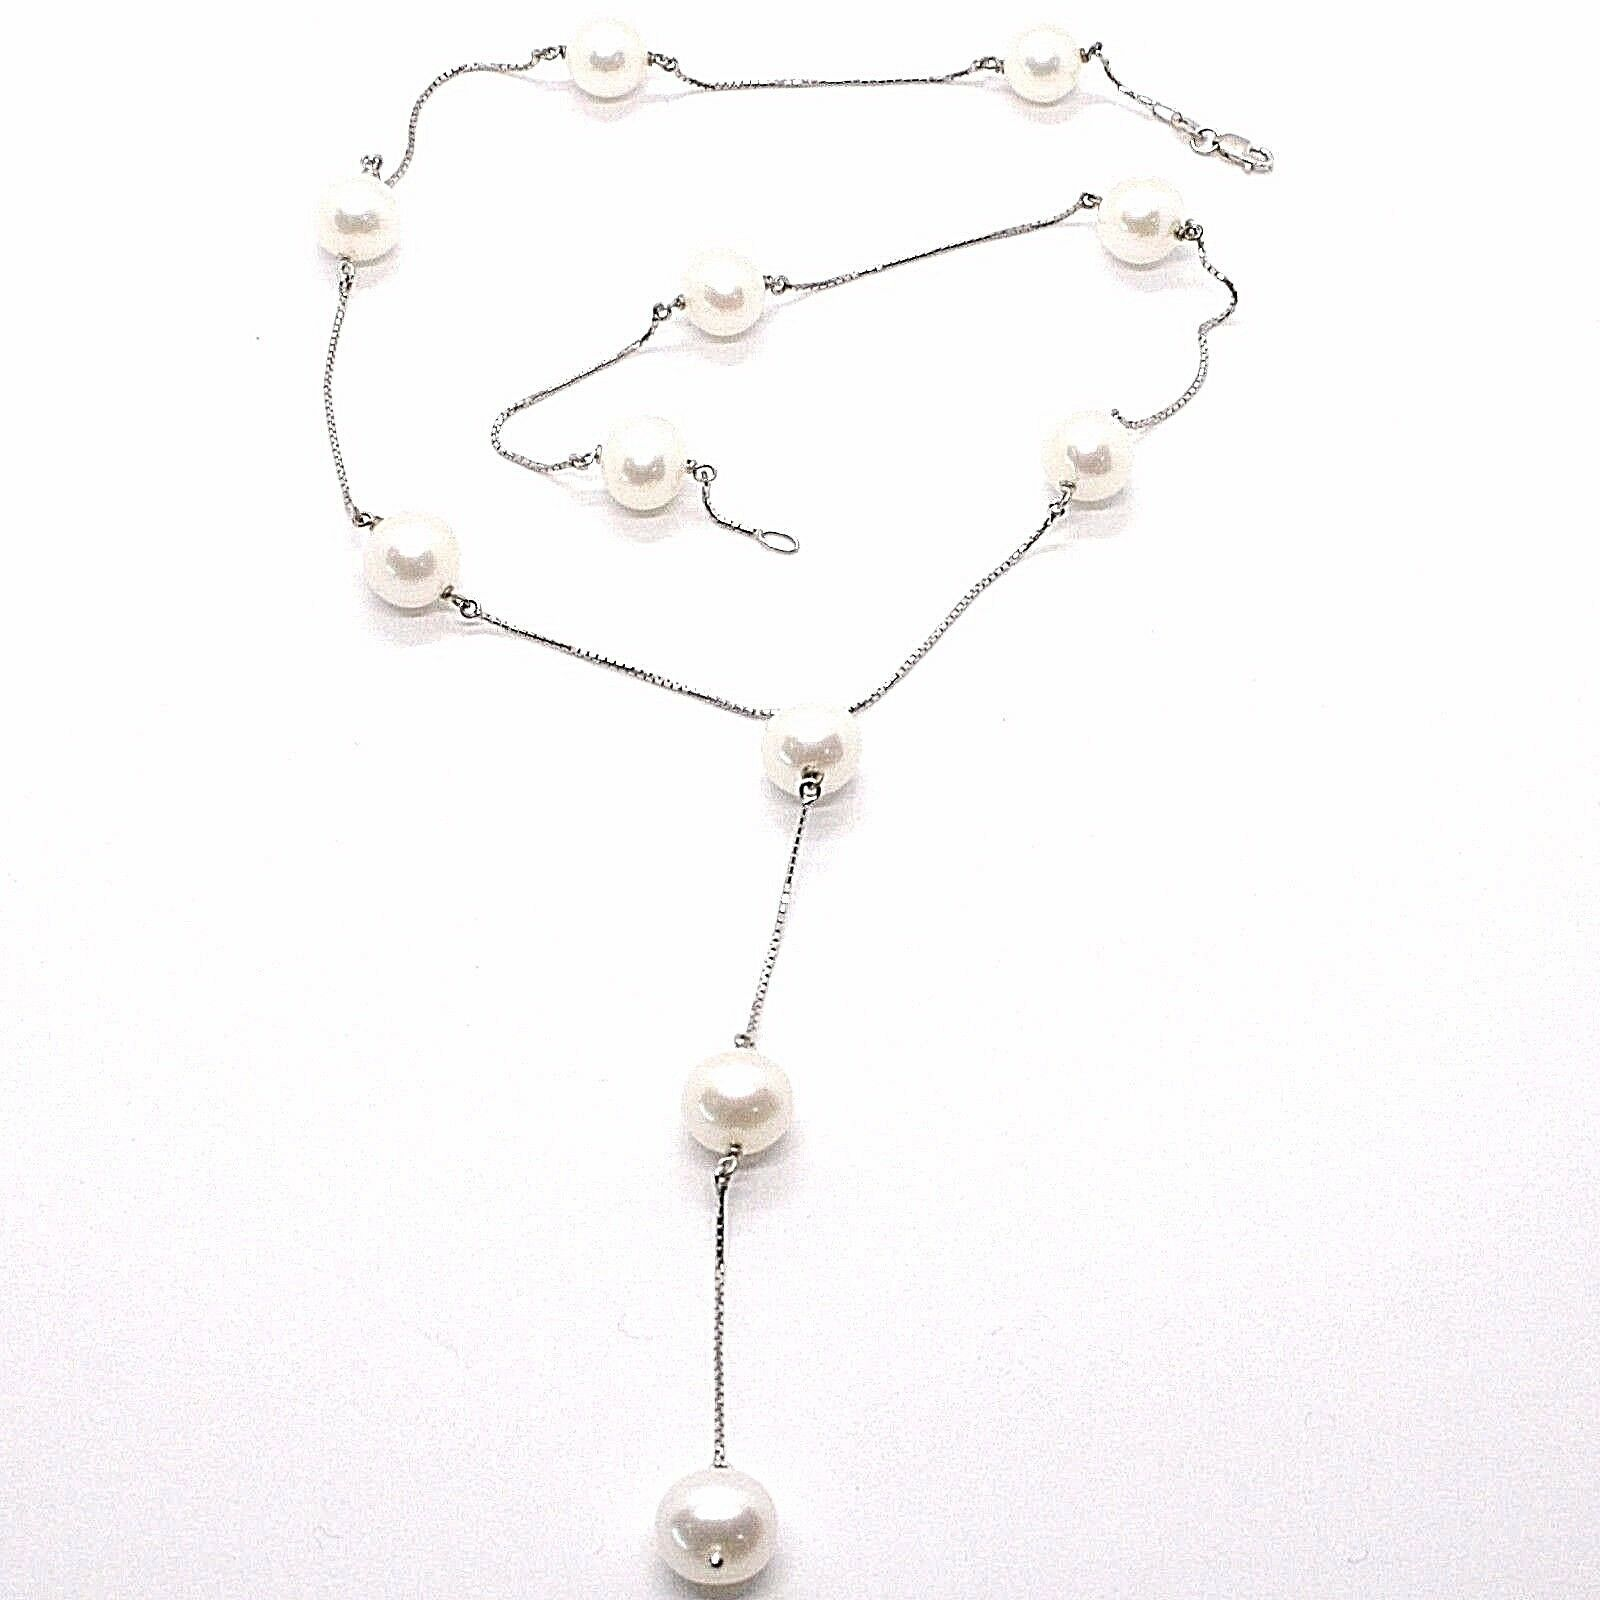 Necklace White Gold 750 18k, Pearls 10 mm, with Hanging Charm, Chain Venetian